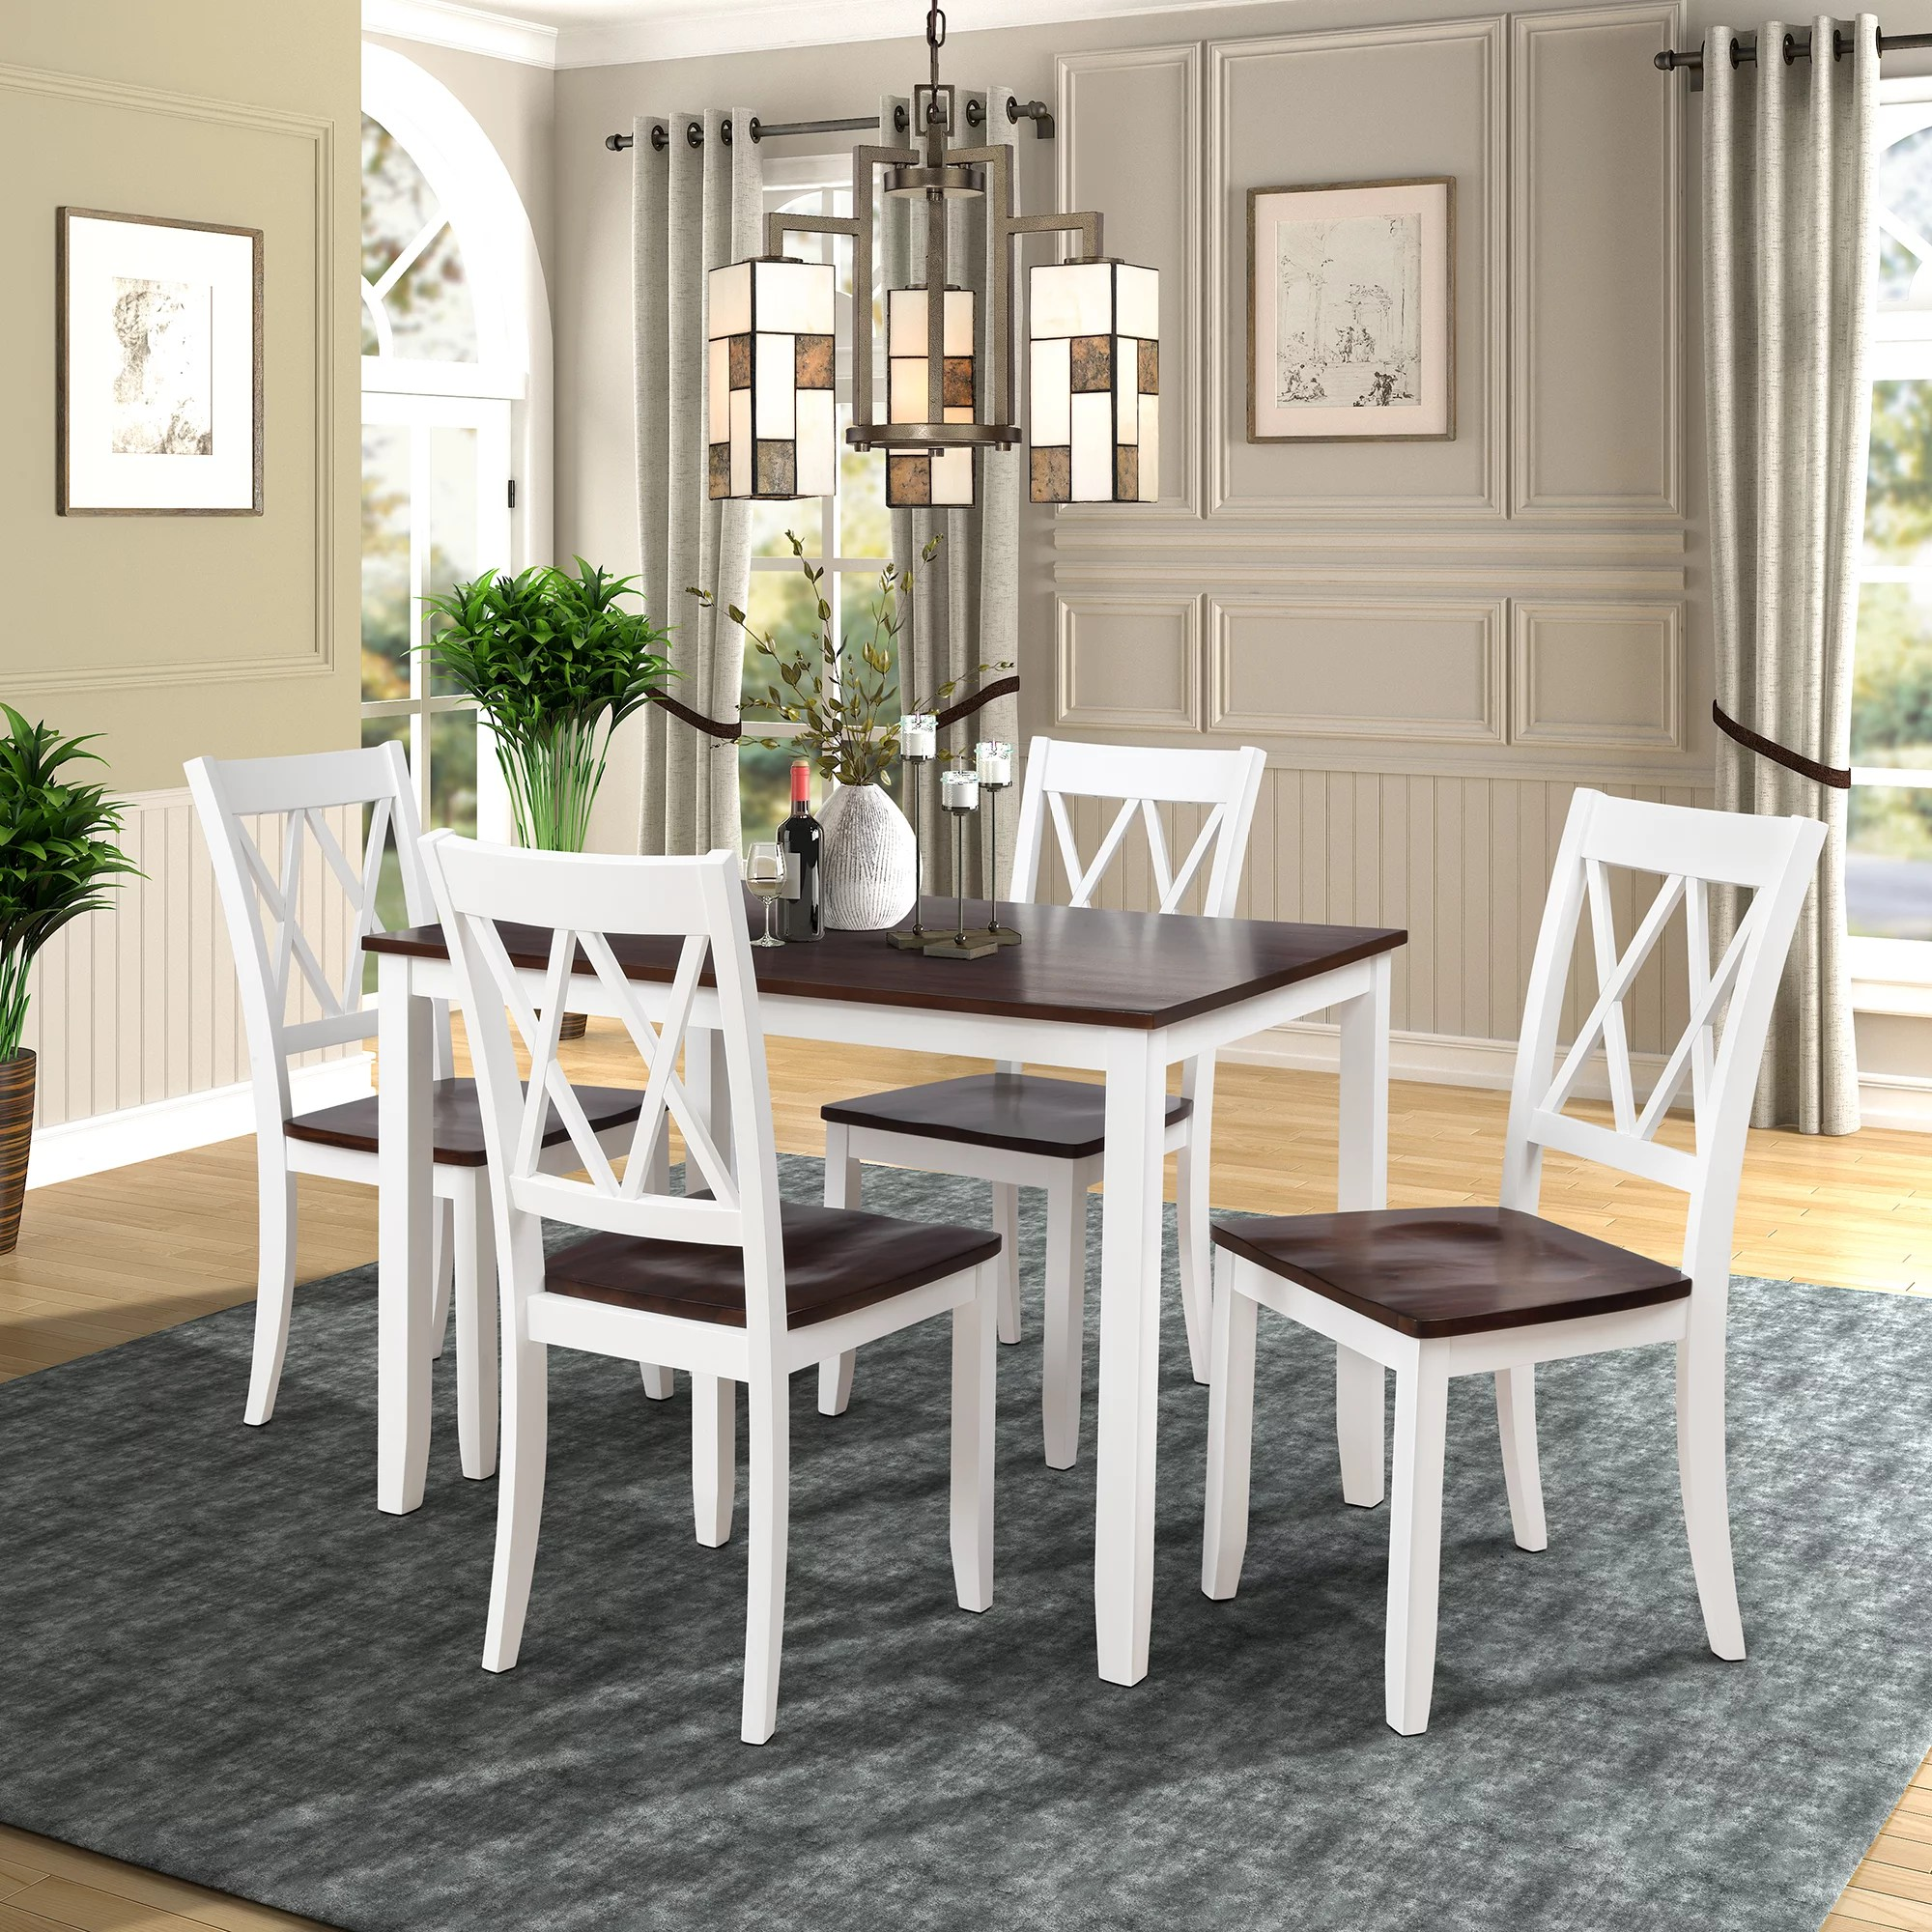 clearance 5 piece dining table set modern kitchen table on dining room sets on clearance id=75443